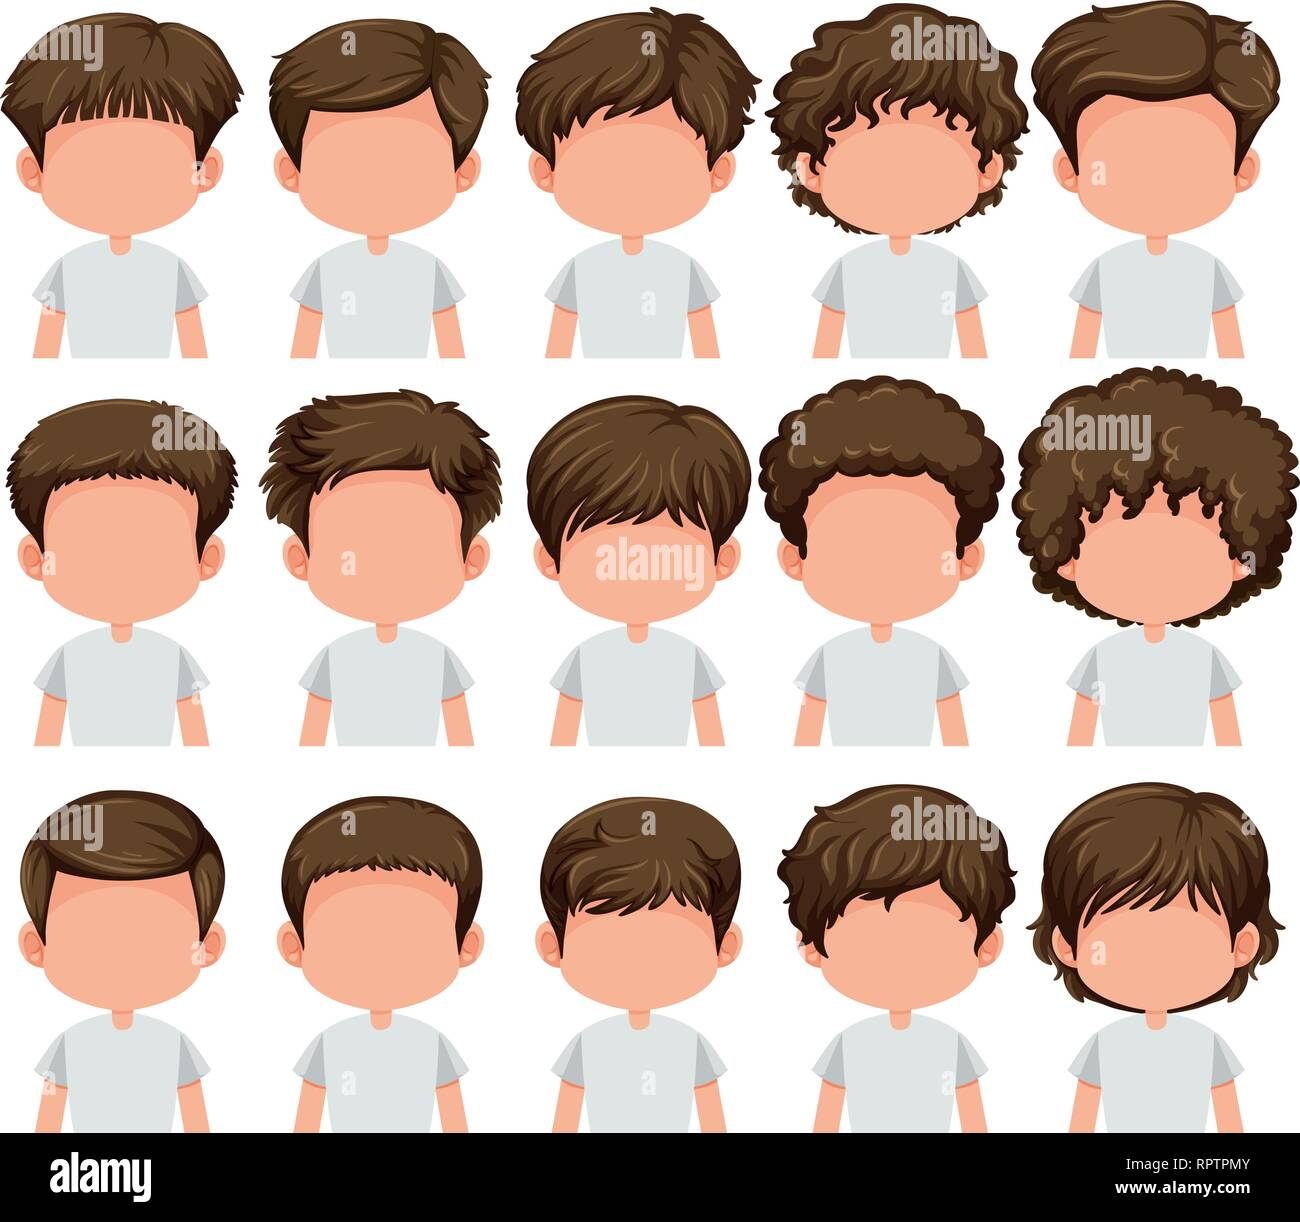 Set Of Boy Different Hairstyle Illustration Stock Vector Art